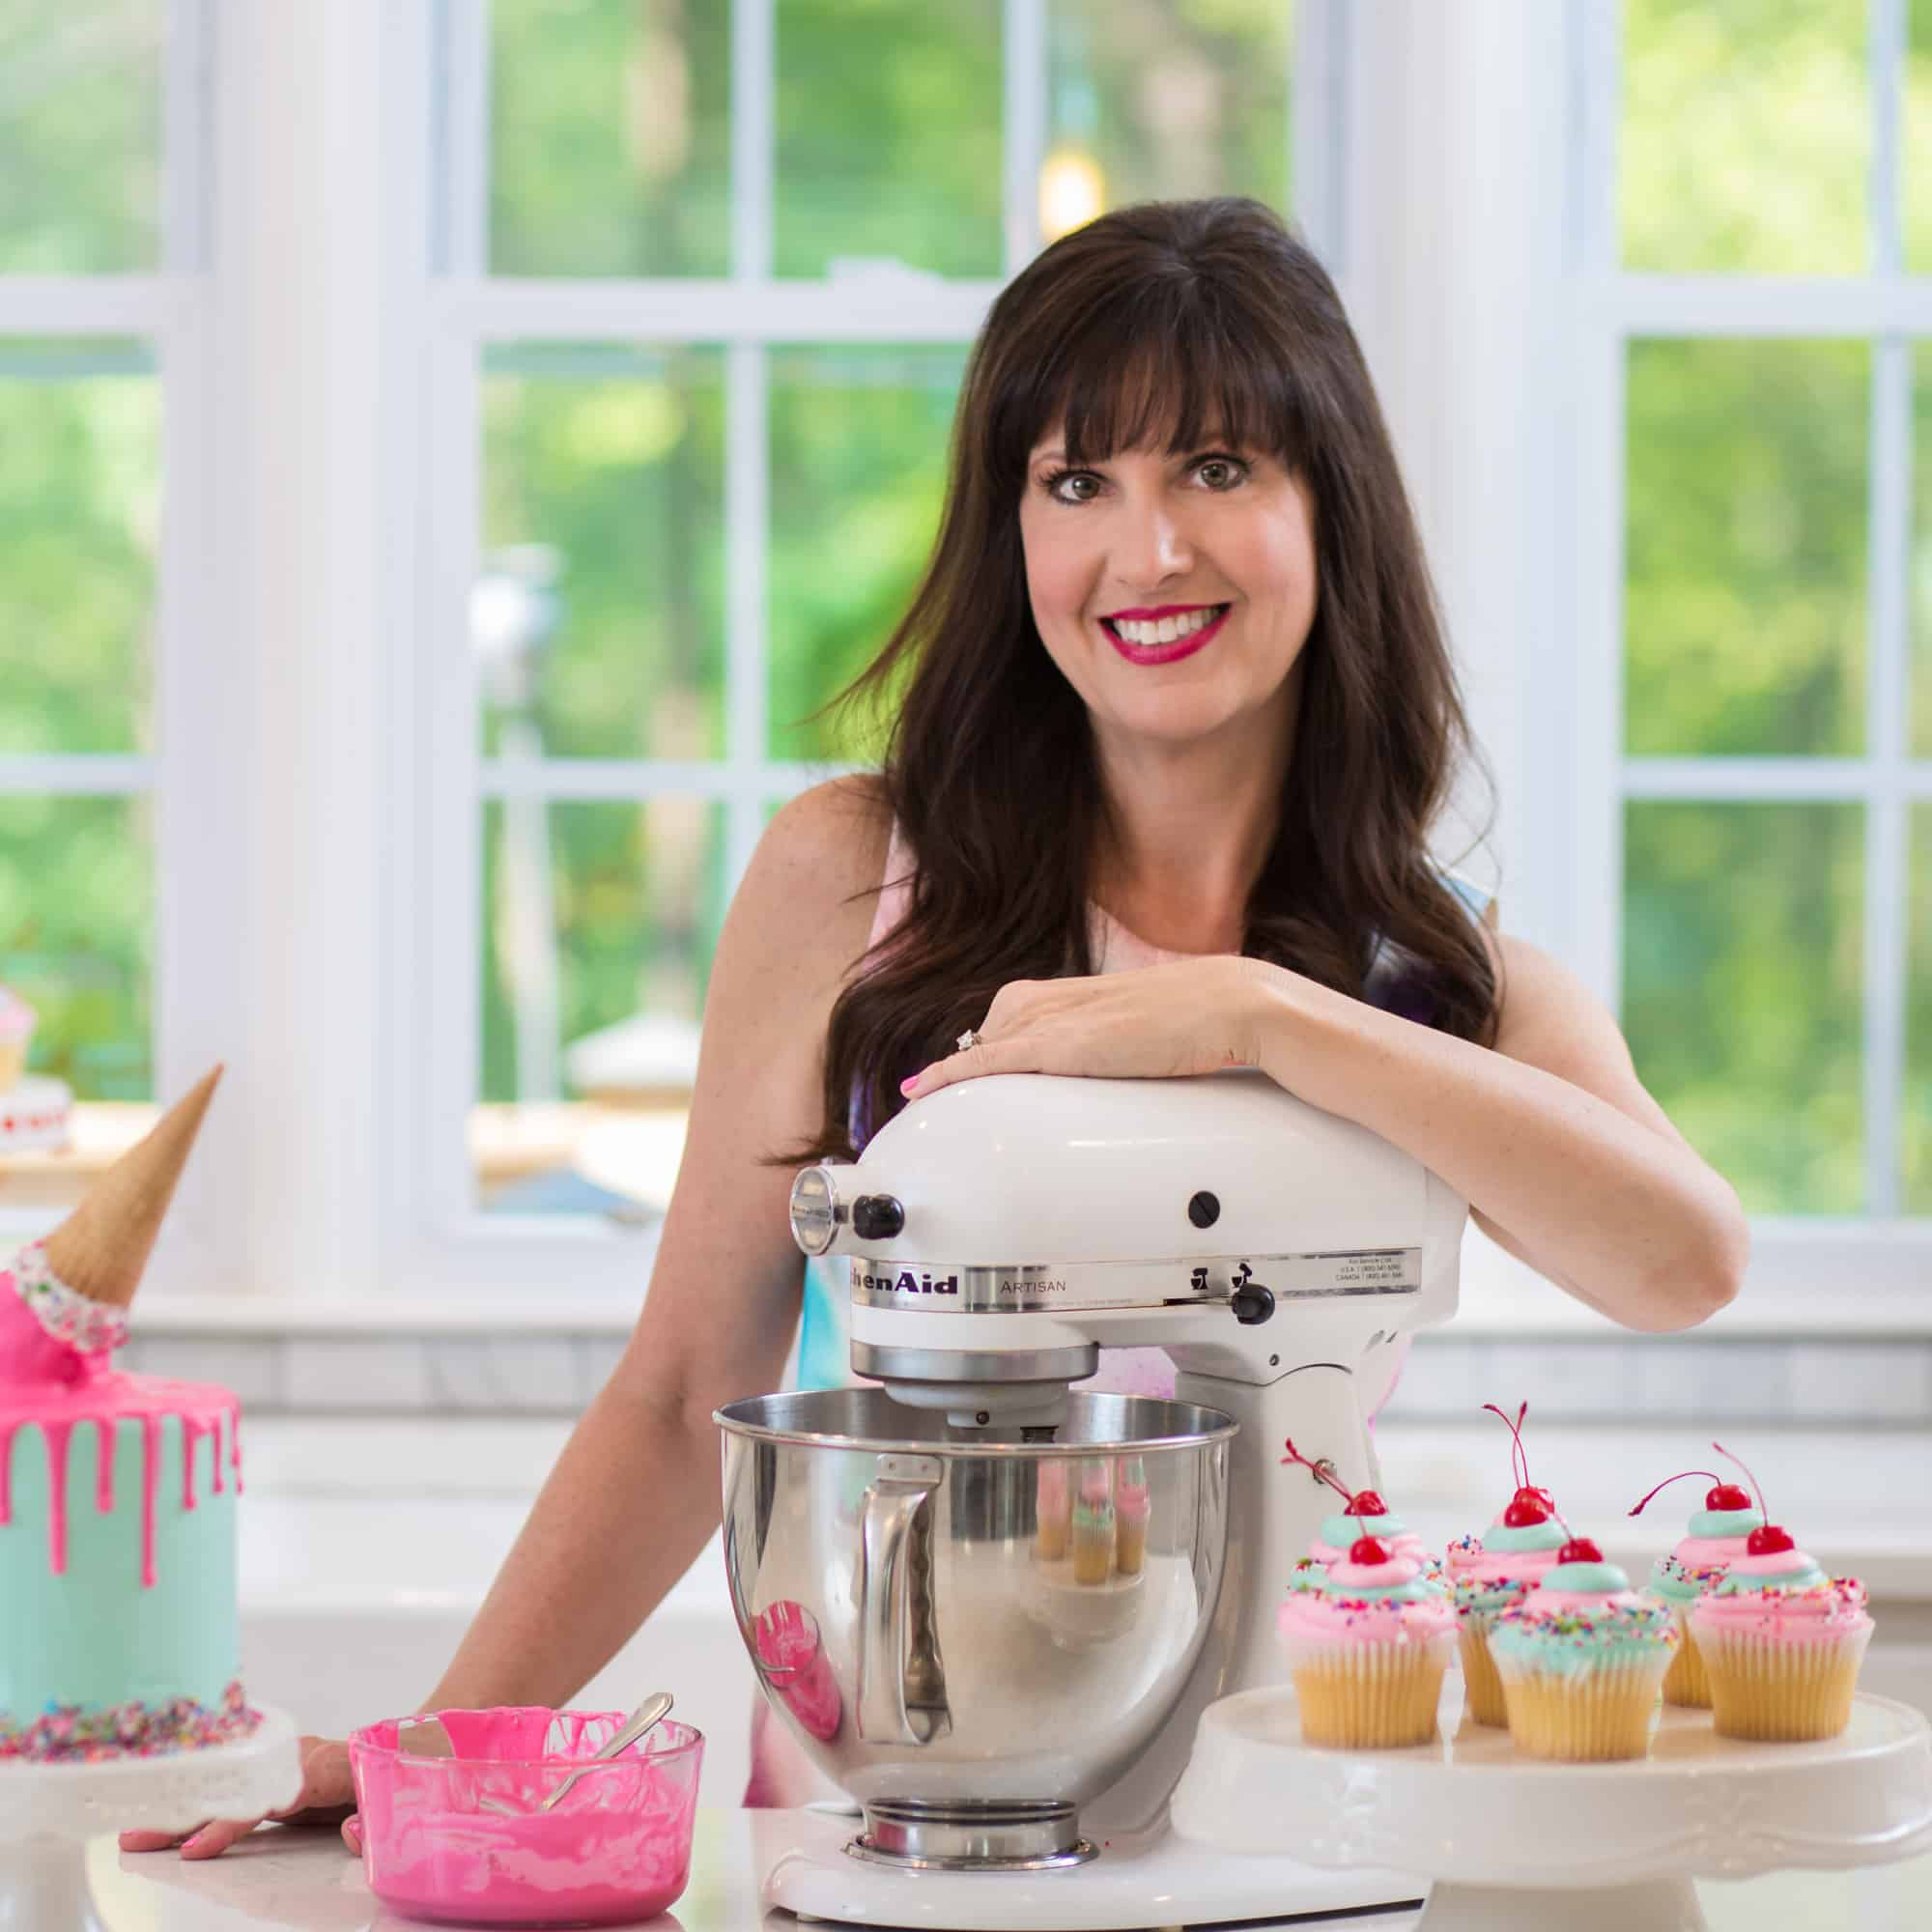 Lise Ode of Mom Loves Baking in her kitchen with baked goodies